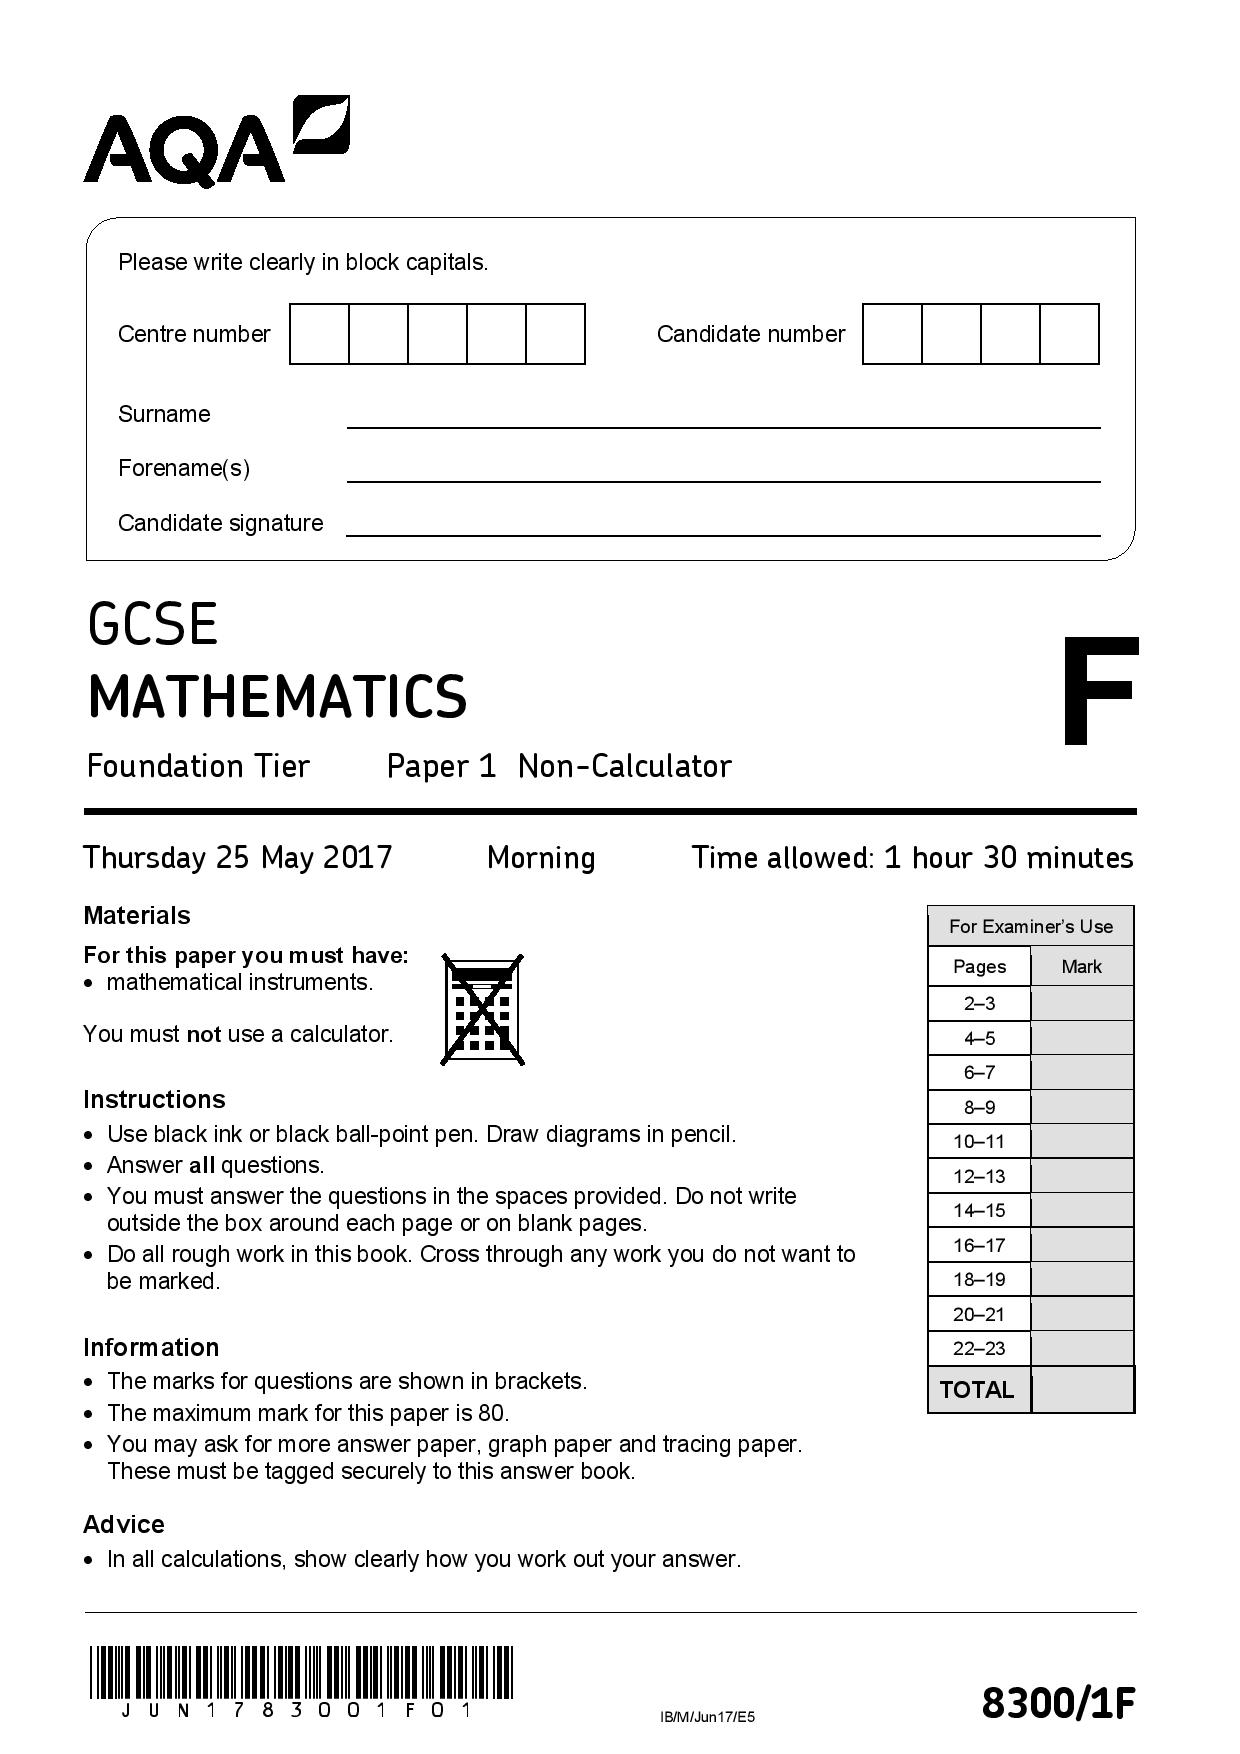 AQA June 2017 Foundation paper question paper page 001